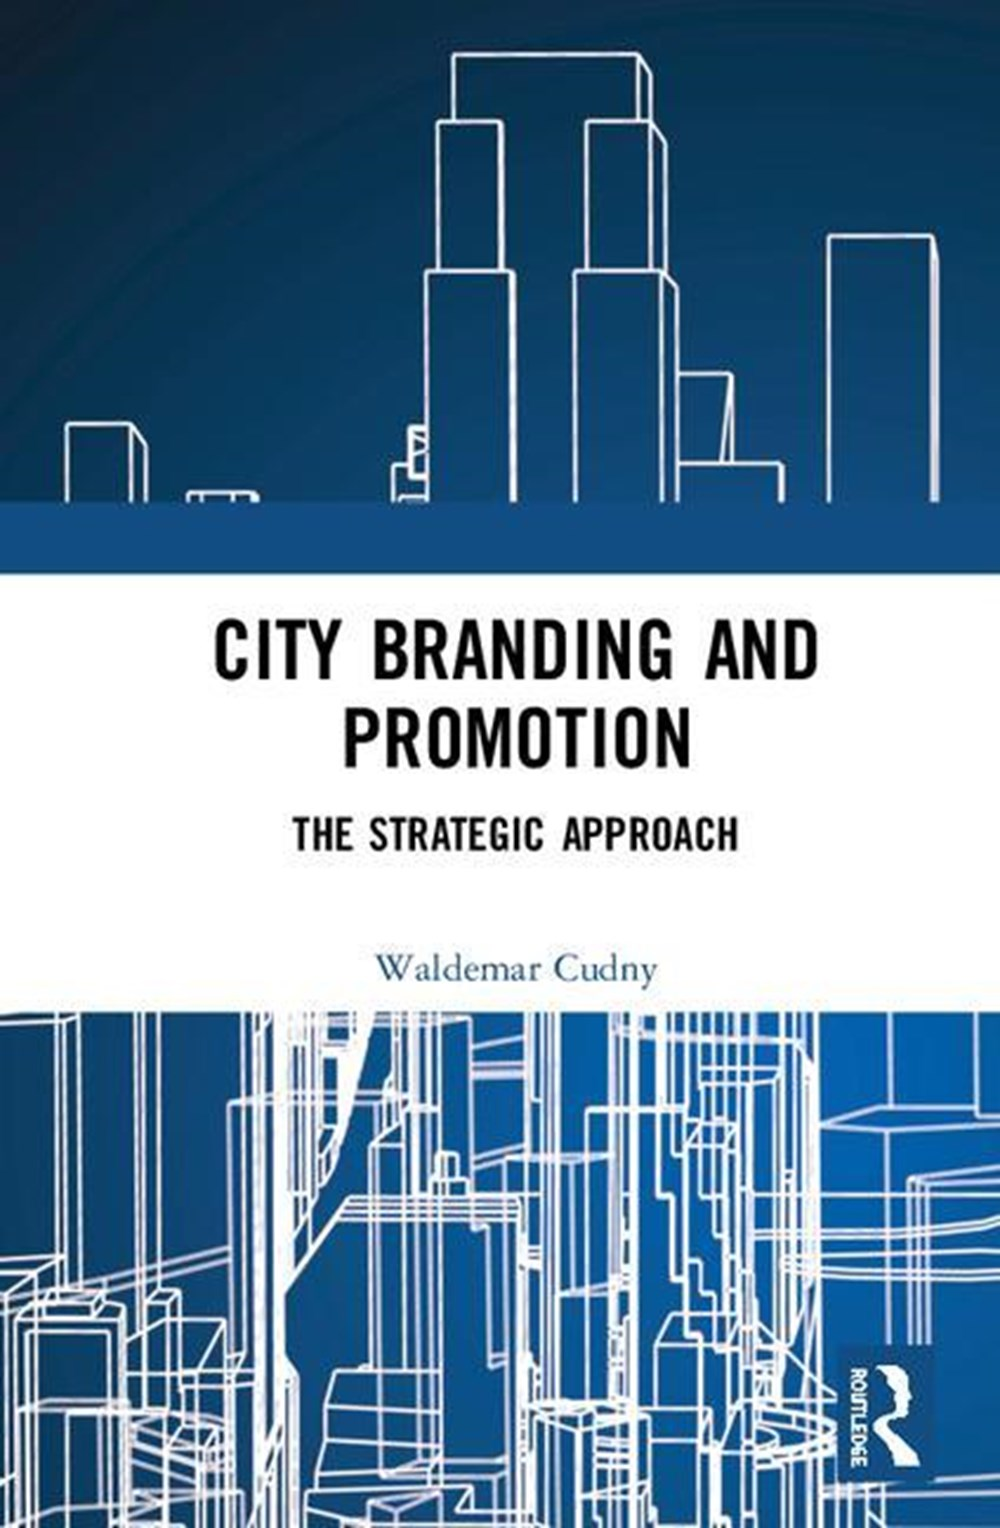 City Branding and Promotion The Strategic Approach